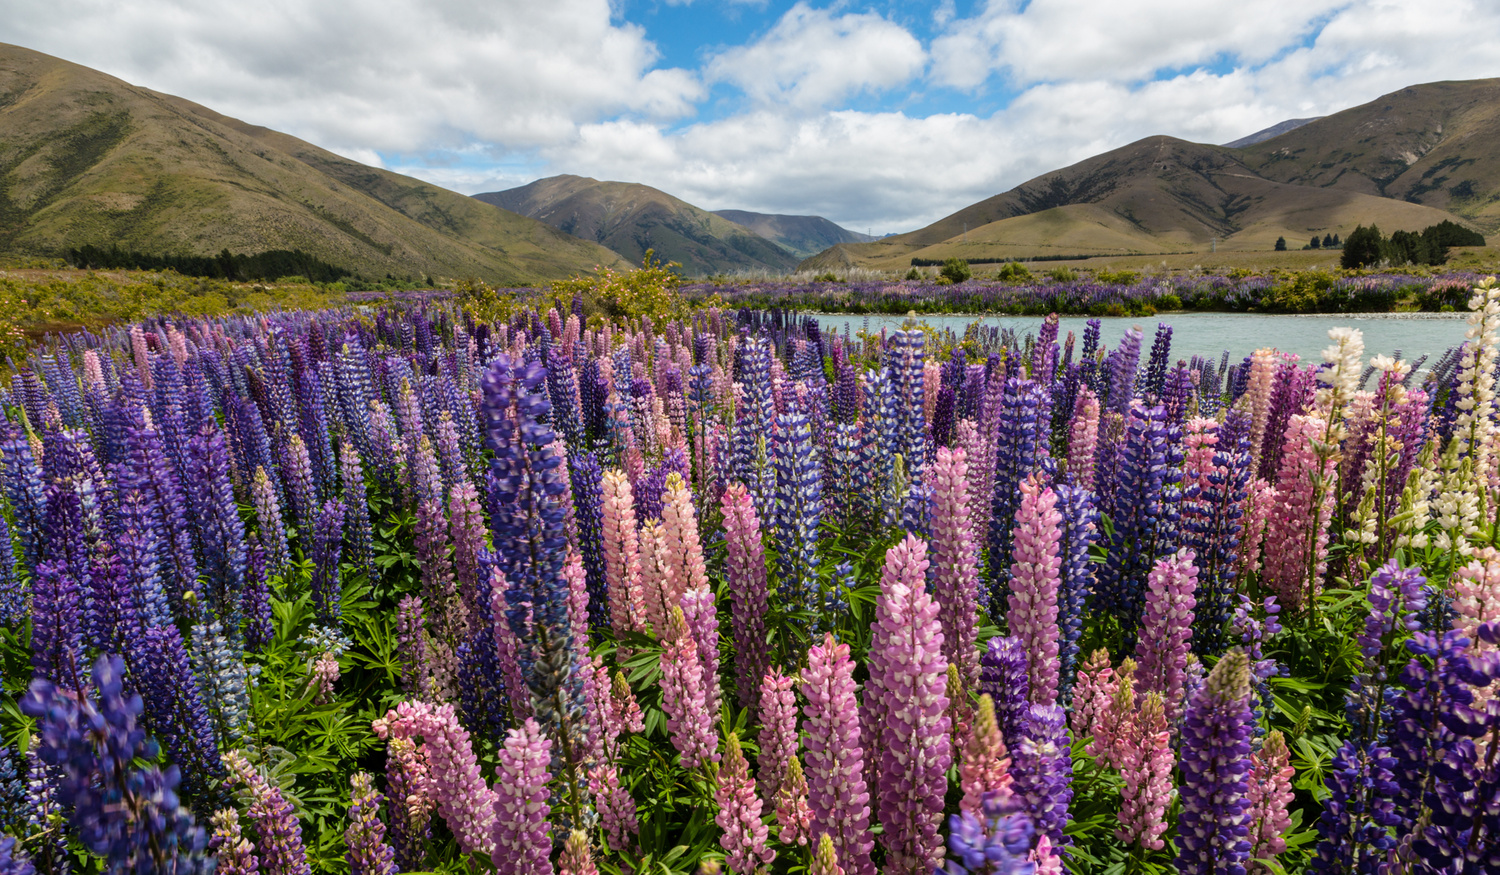 Lupin Field by Thomas Even